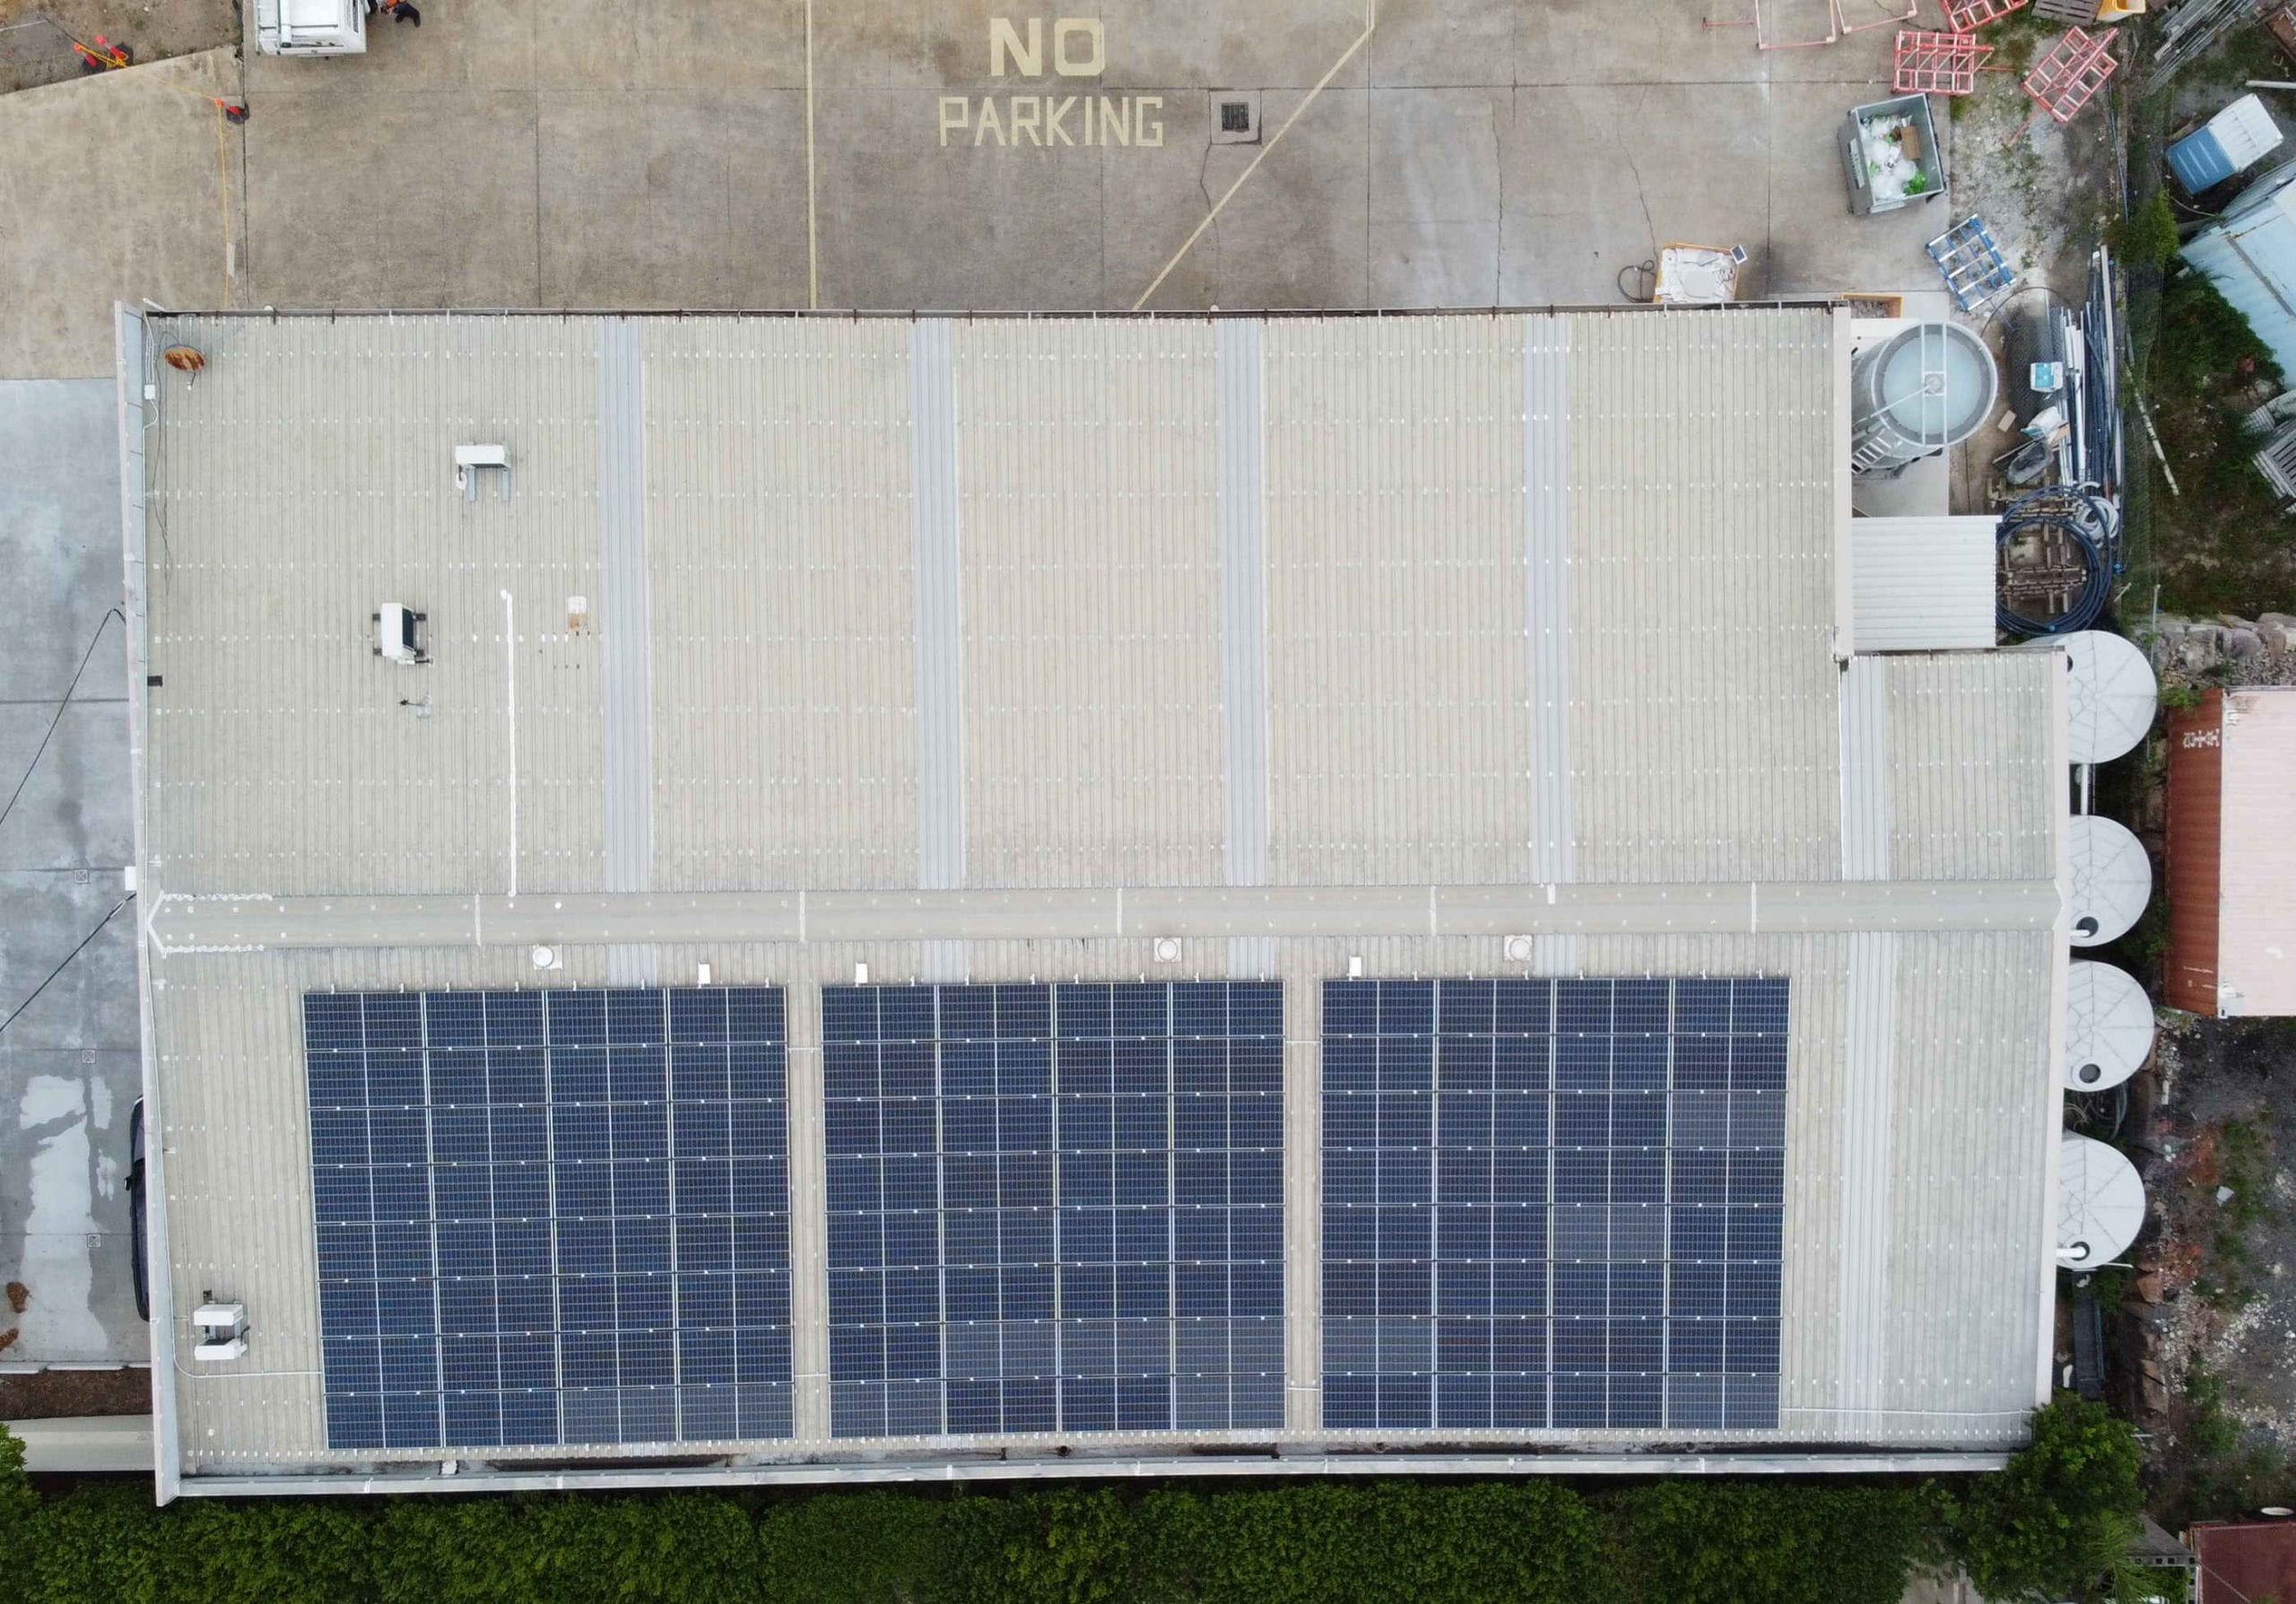 38kW SolarEdge commercial solar power system at Arundel